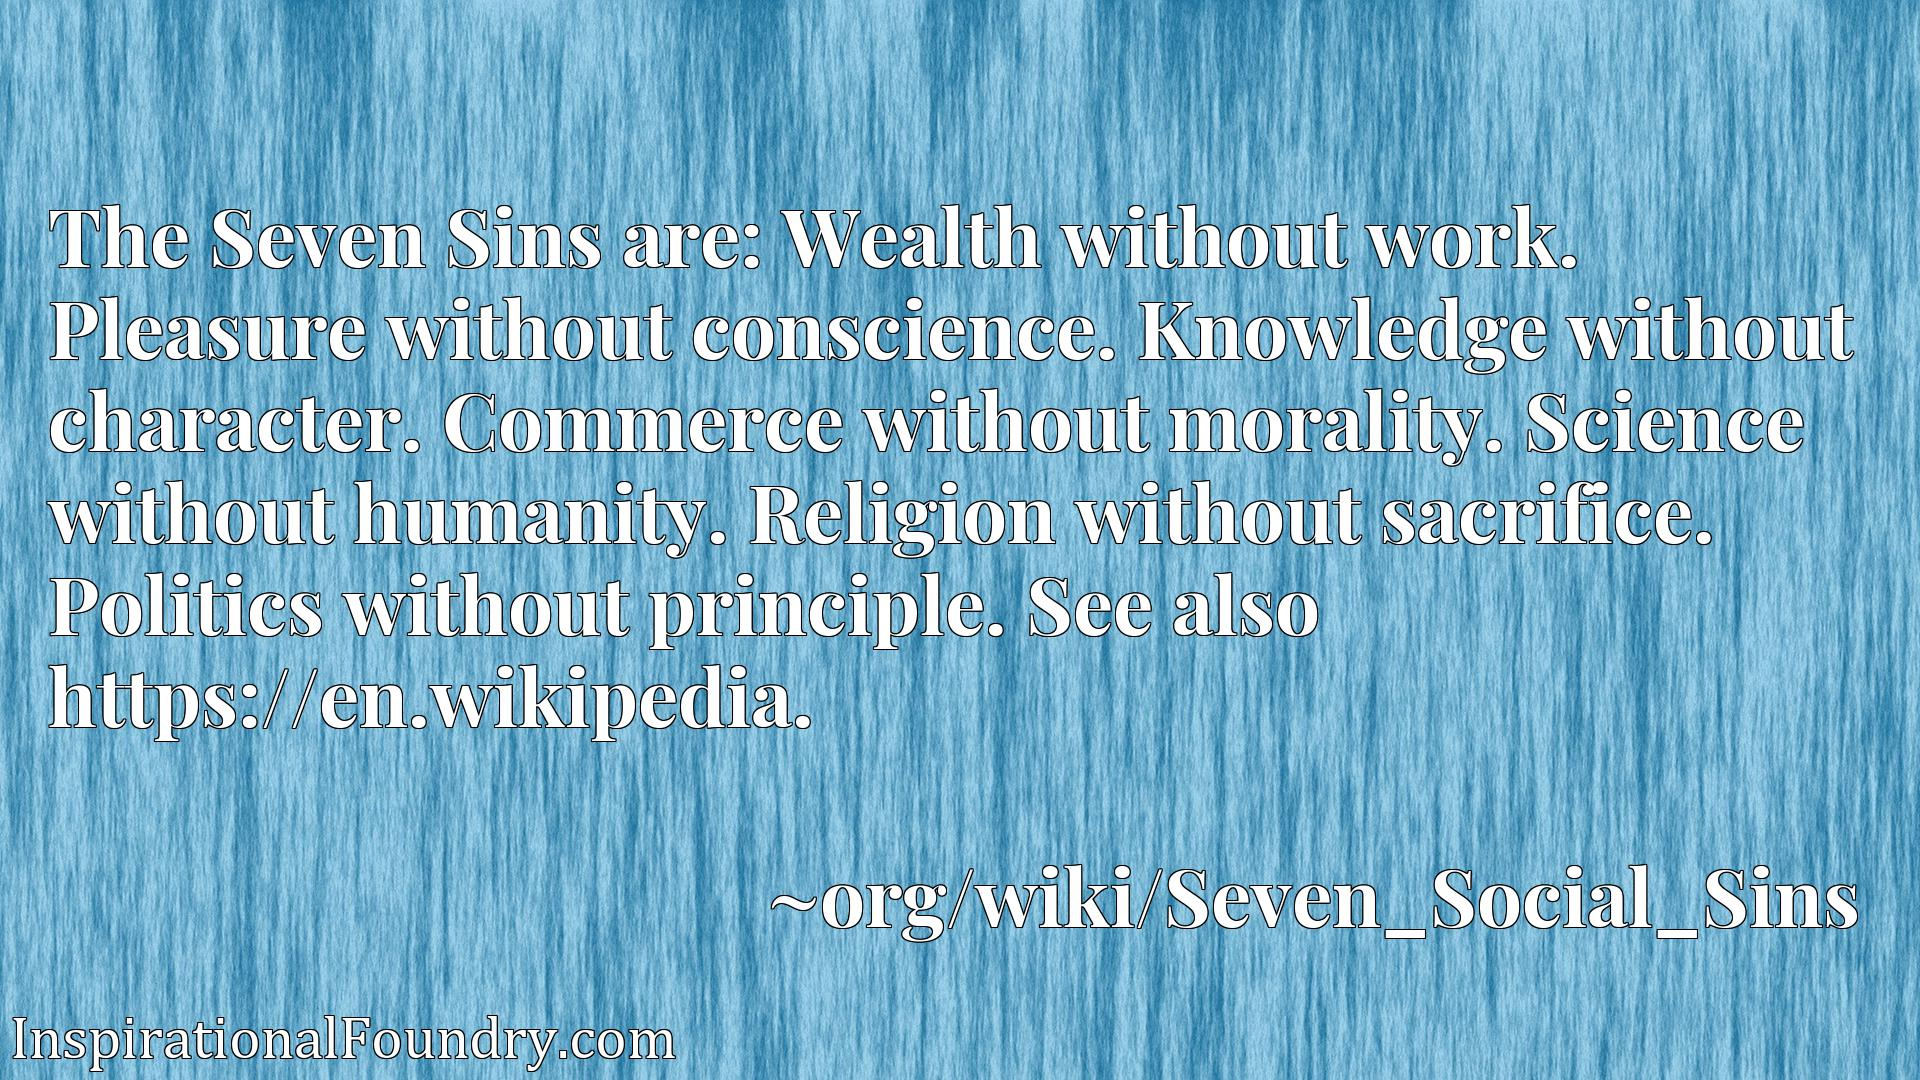 The Seven Sins are: Wealth without work. Pleasure without conscience. Knowledge without character. Commerce without morality. Science without humanity. Religion without sacrifice. Politics without principle. See also https://en.wikipedia.